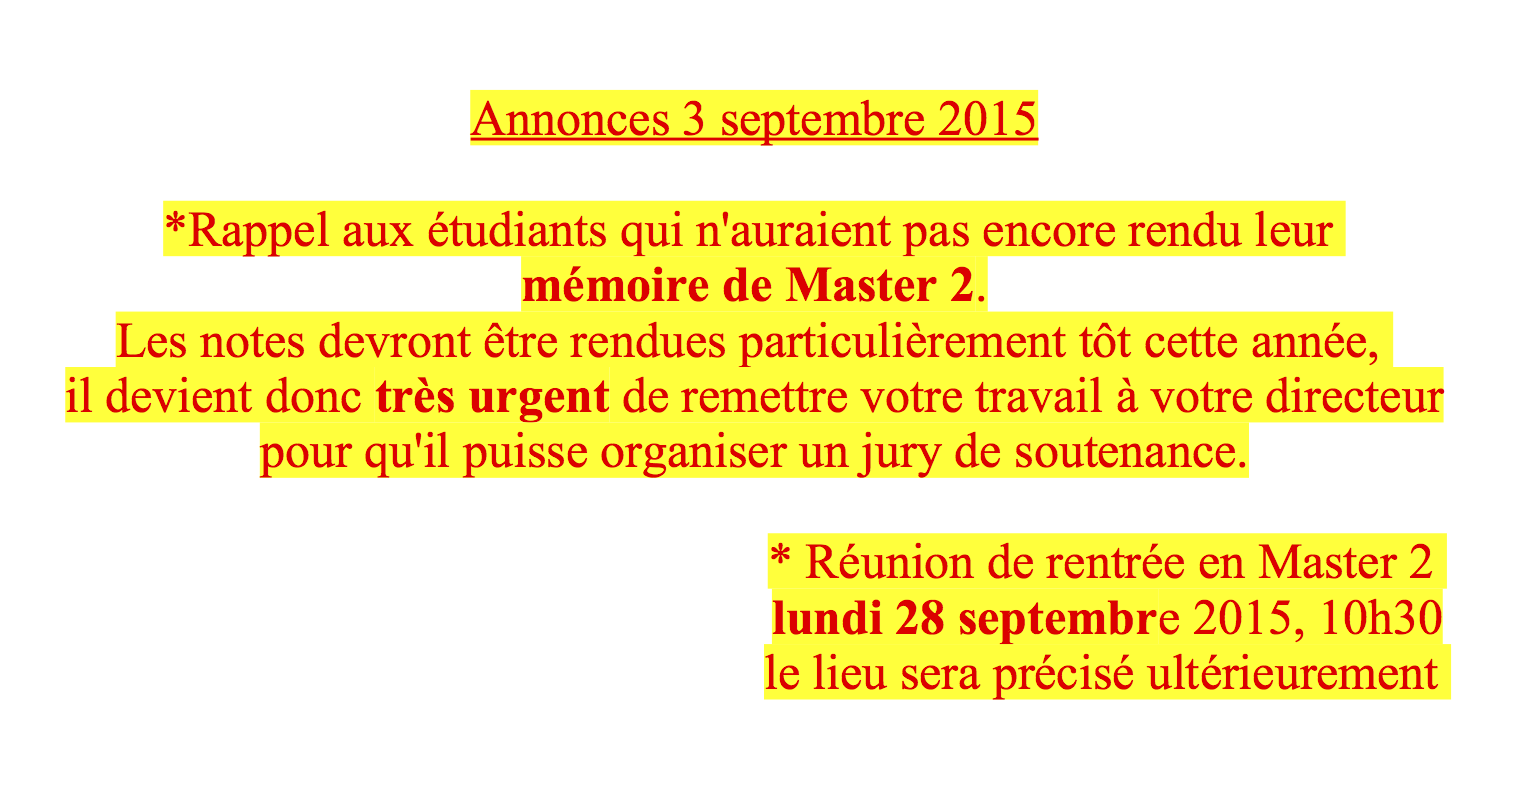 2015_09 annonce version decalee